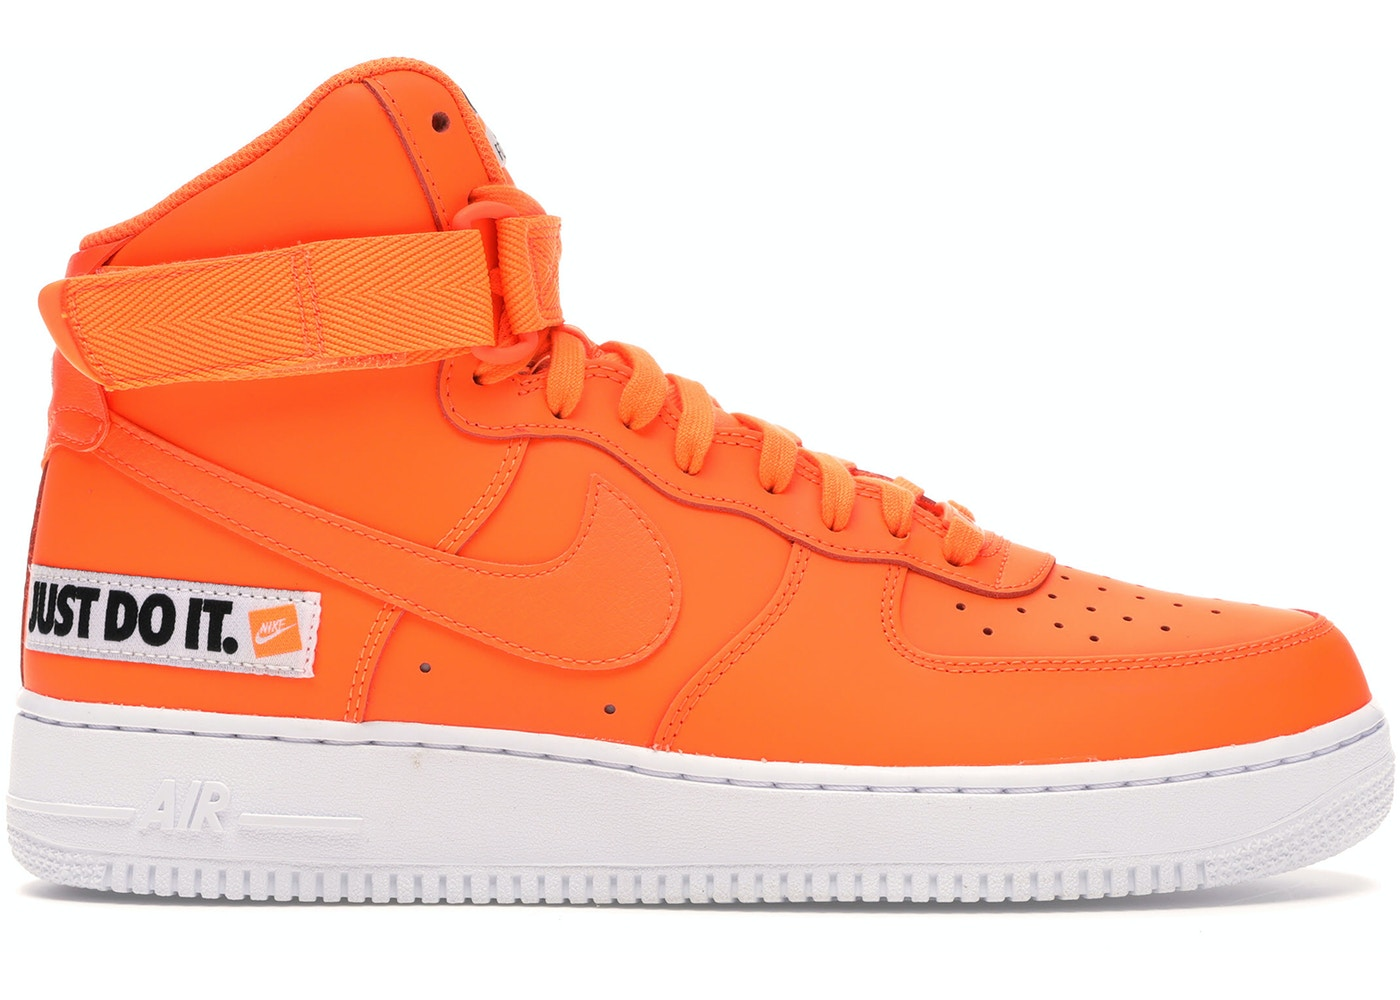 official photos cd9e0 17a0c Air Force 1 High Just Do It Pack Orange